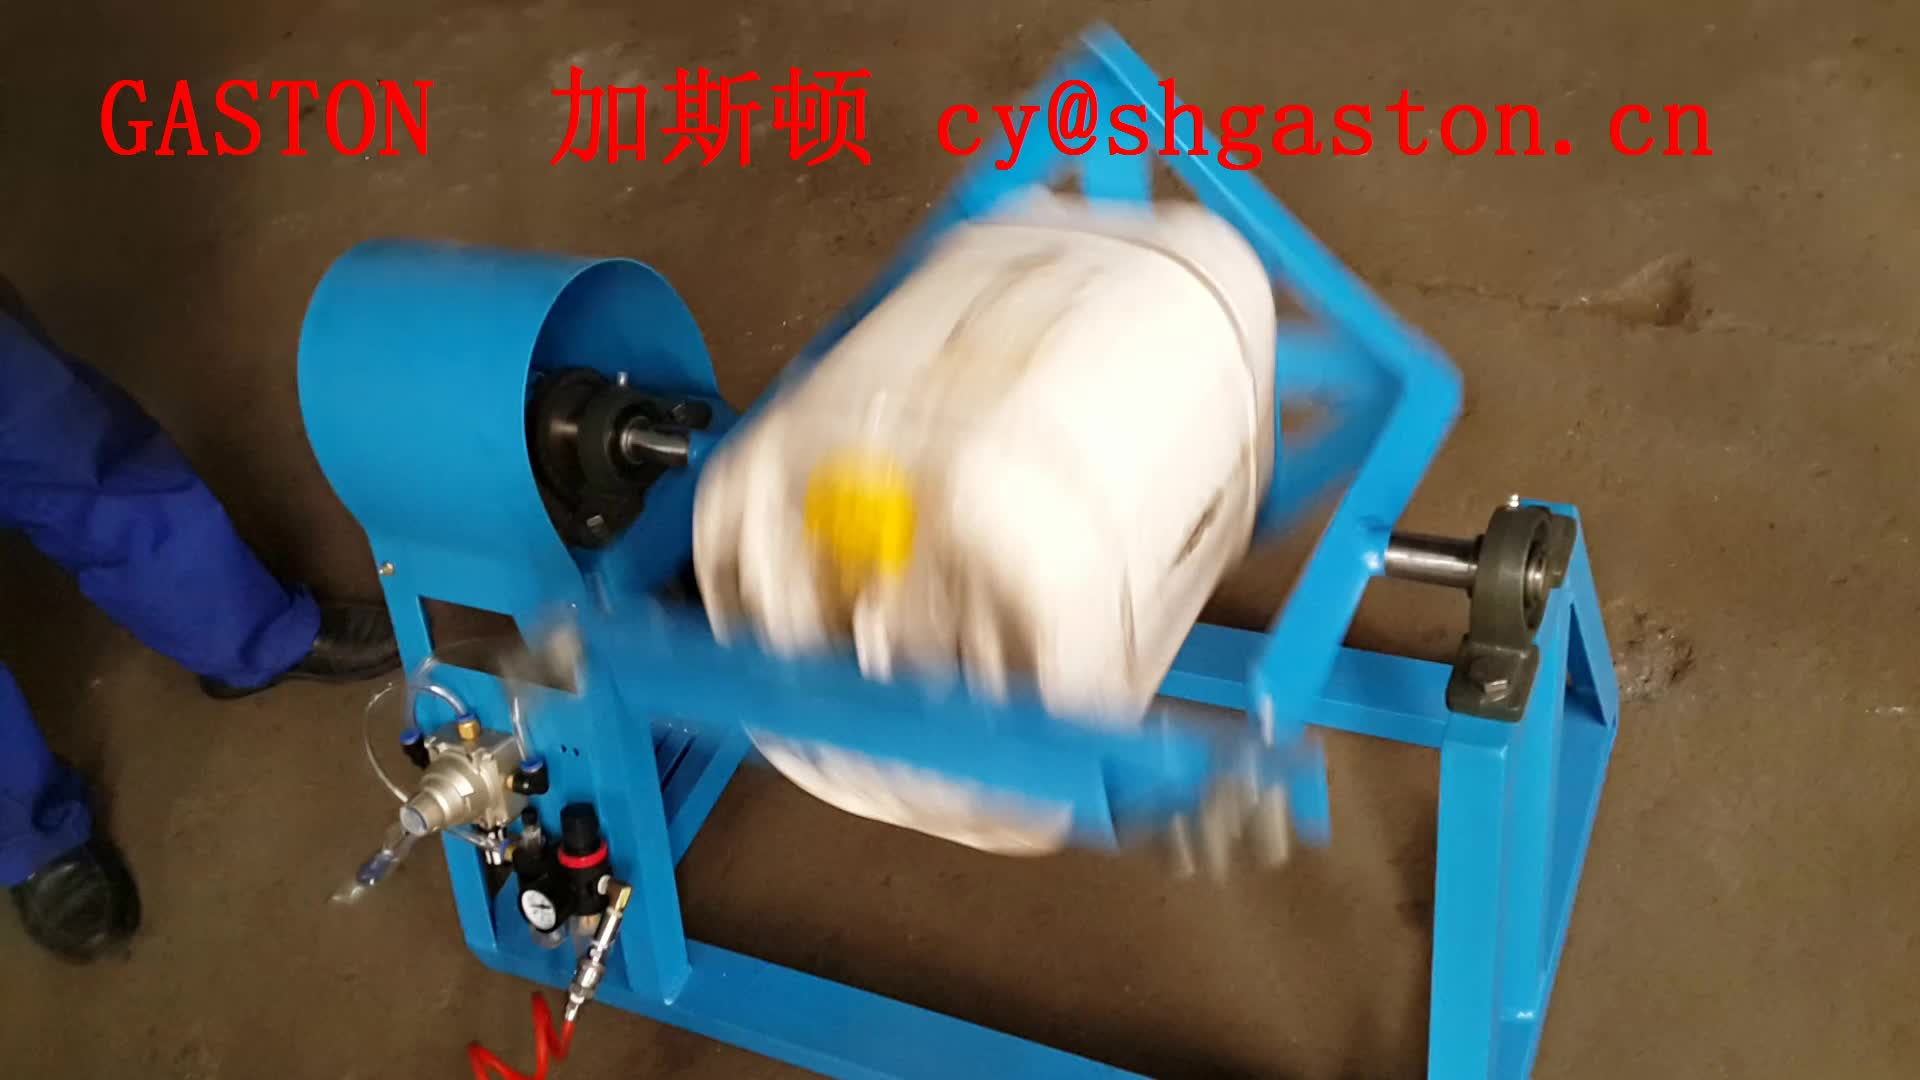 60 and 200 l barrel 360 degree rotary drum mixer automatic clamping gyroscopic mixer to mix up viscous fluid,inks,paint,coating,